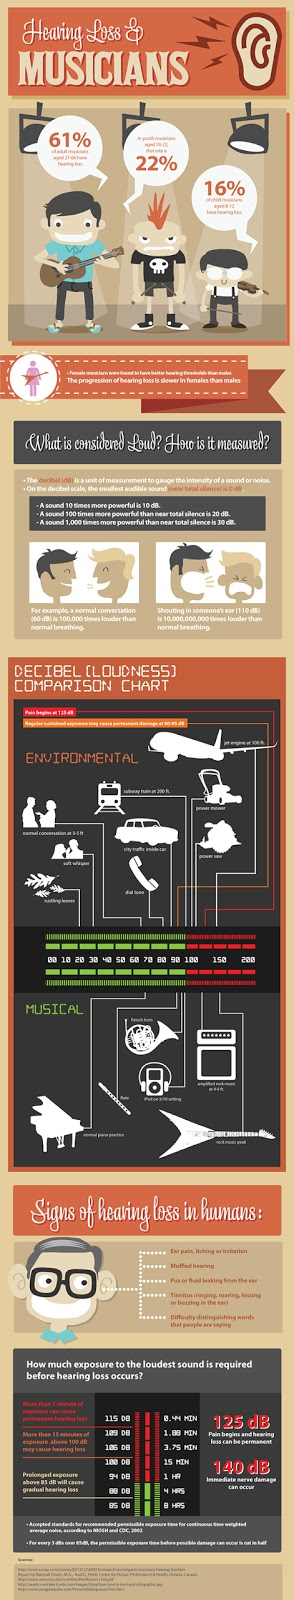 Hearing Loss In Musicians infographic from Bobby Owsinski's Big Picture blog